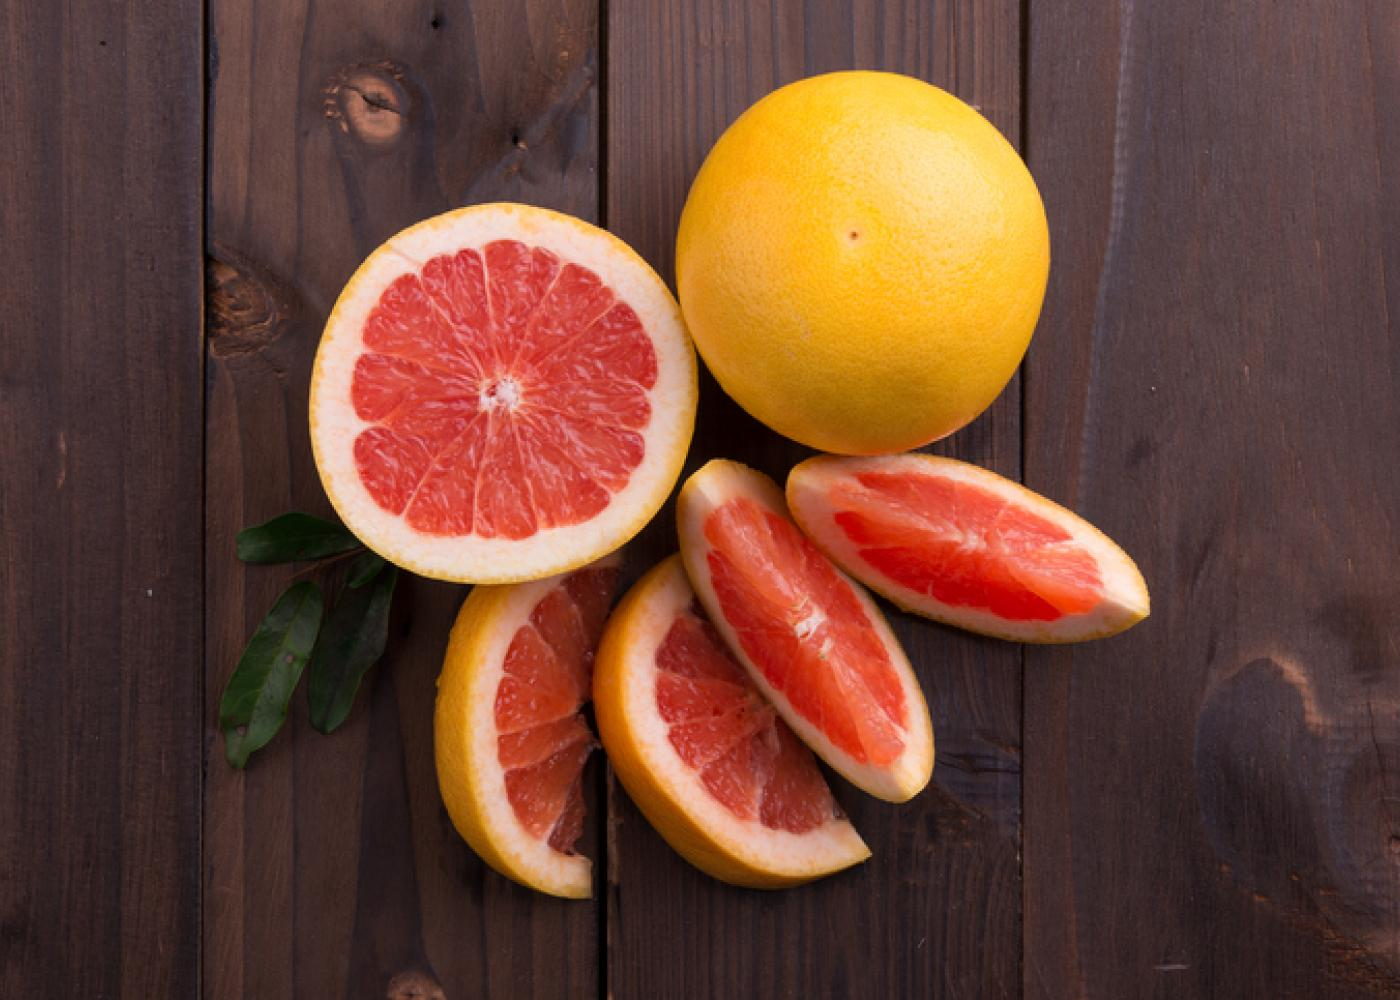 grapefruit slices and whole grapefruit